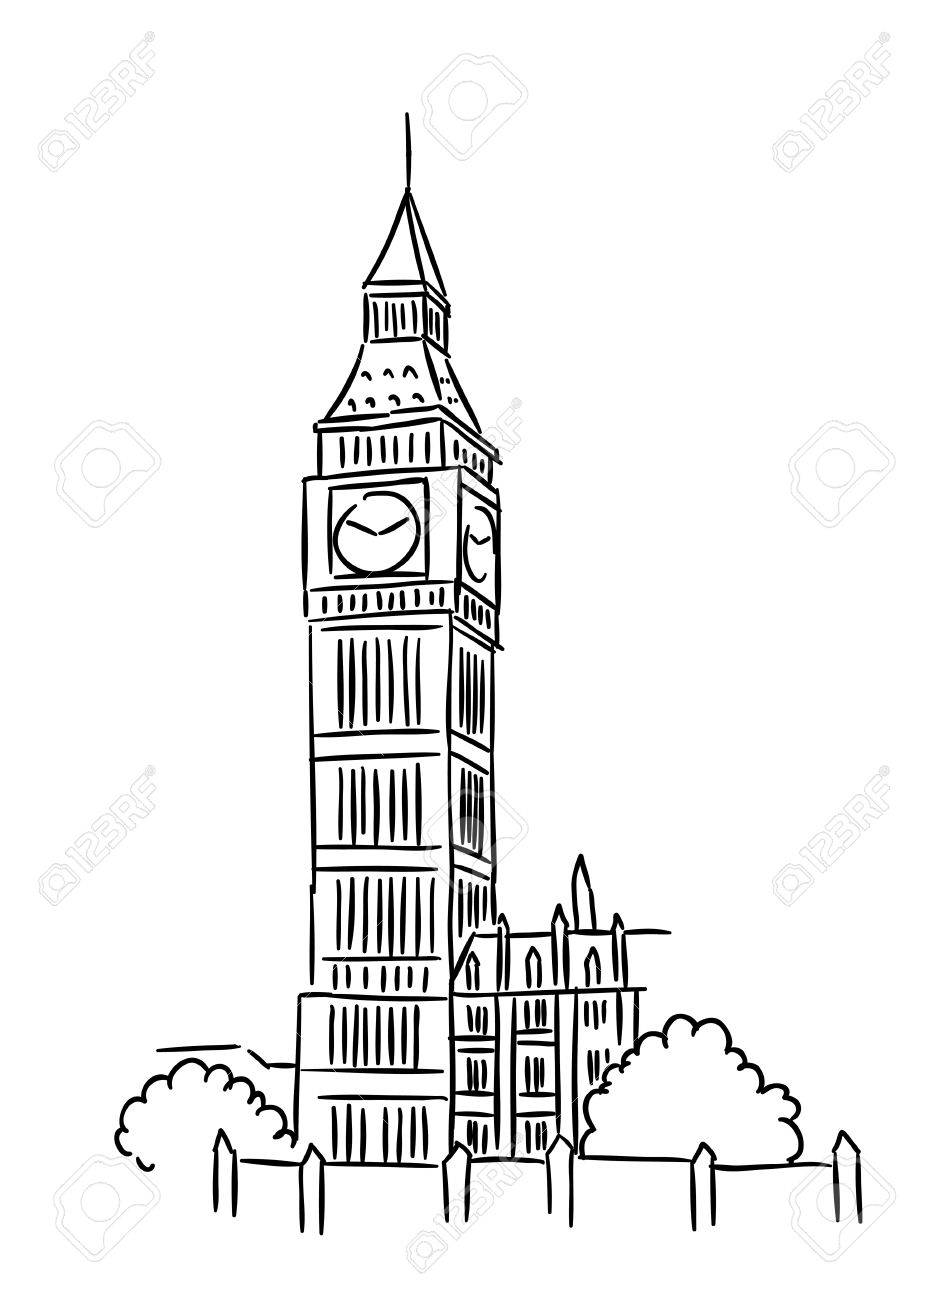 951x1300 Big Ben Tower In London For Travel Industry Design Royalty Free